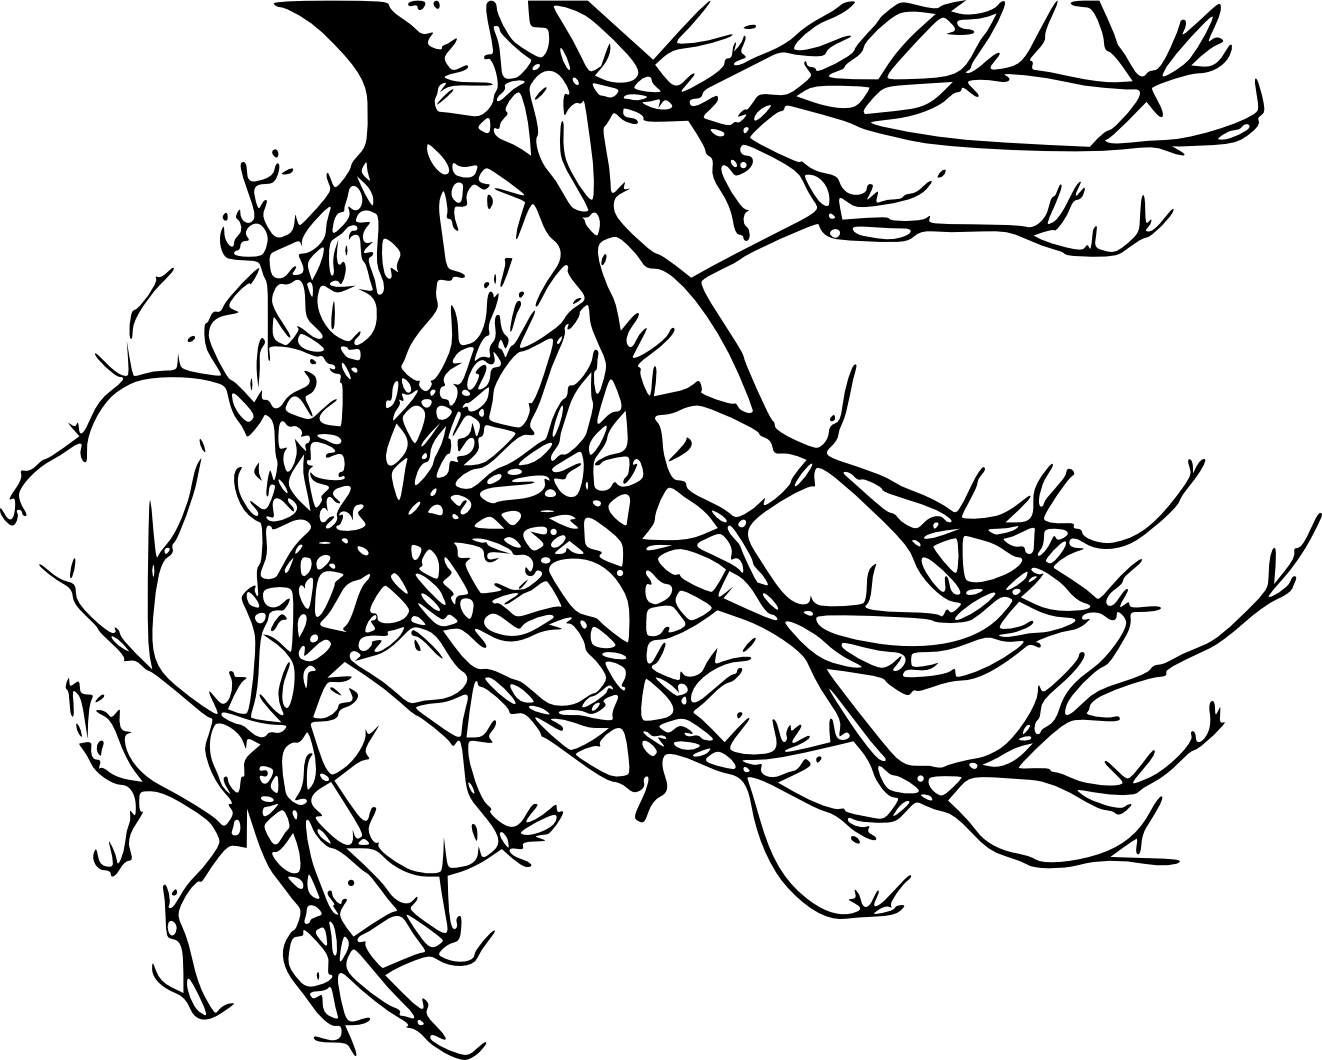 tree branch silhouette tree branch silhouette tree branch silhouette